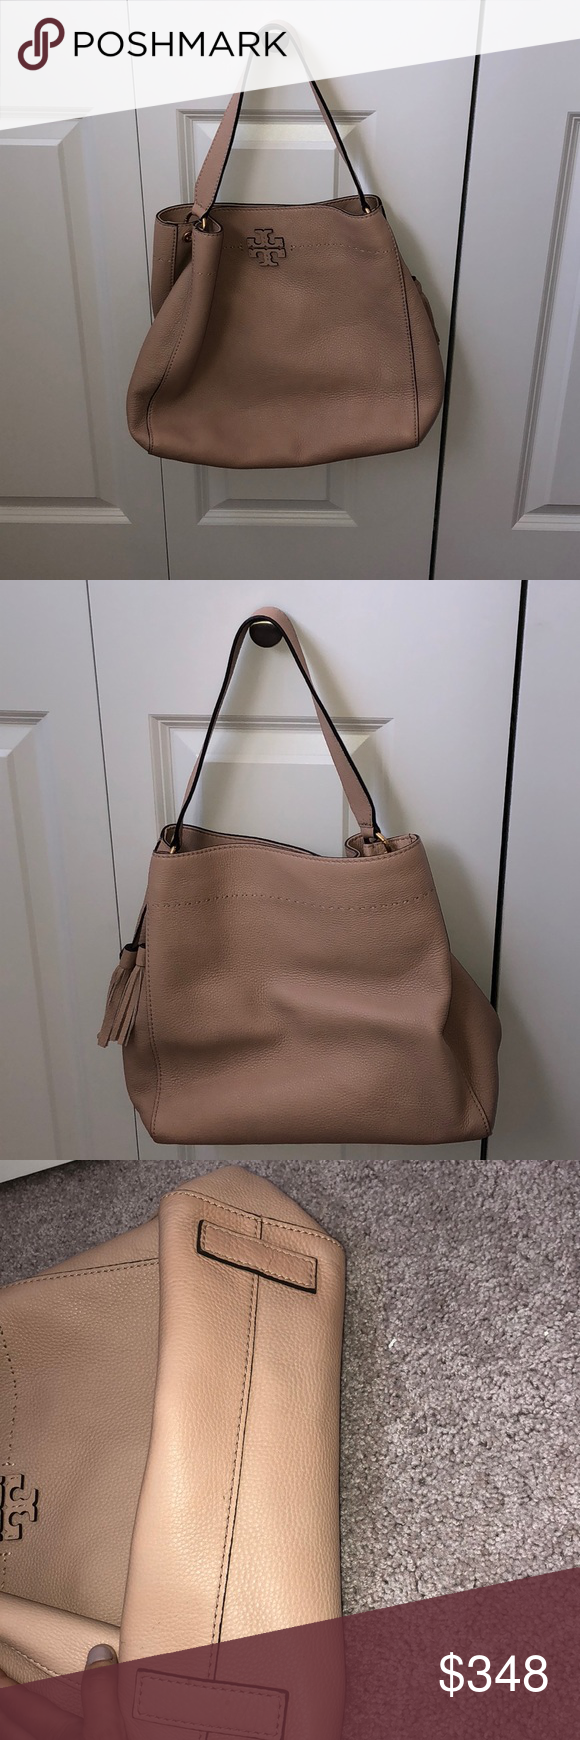 db89a58f680 Tory Burch McGraw Leather Hobo Tory Burch McGraw Leather Hobo. The color is  Devon Sand